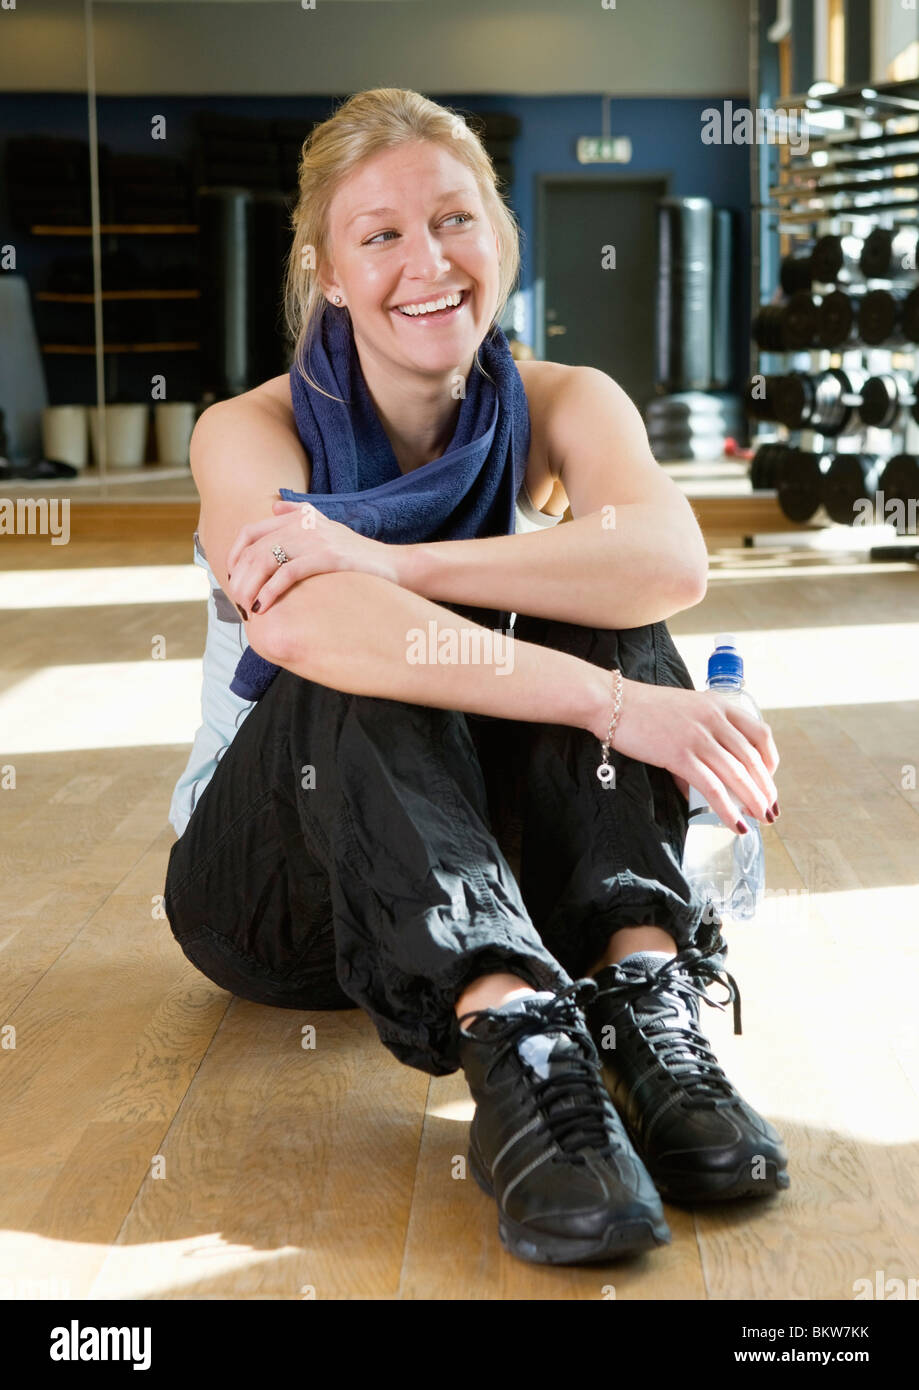 Happy girl after working out - Stock Image